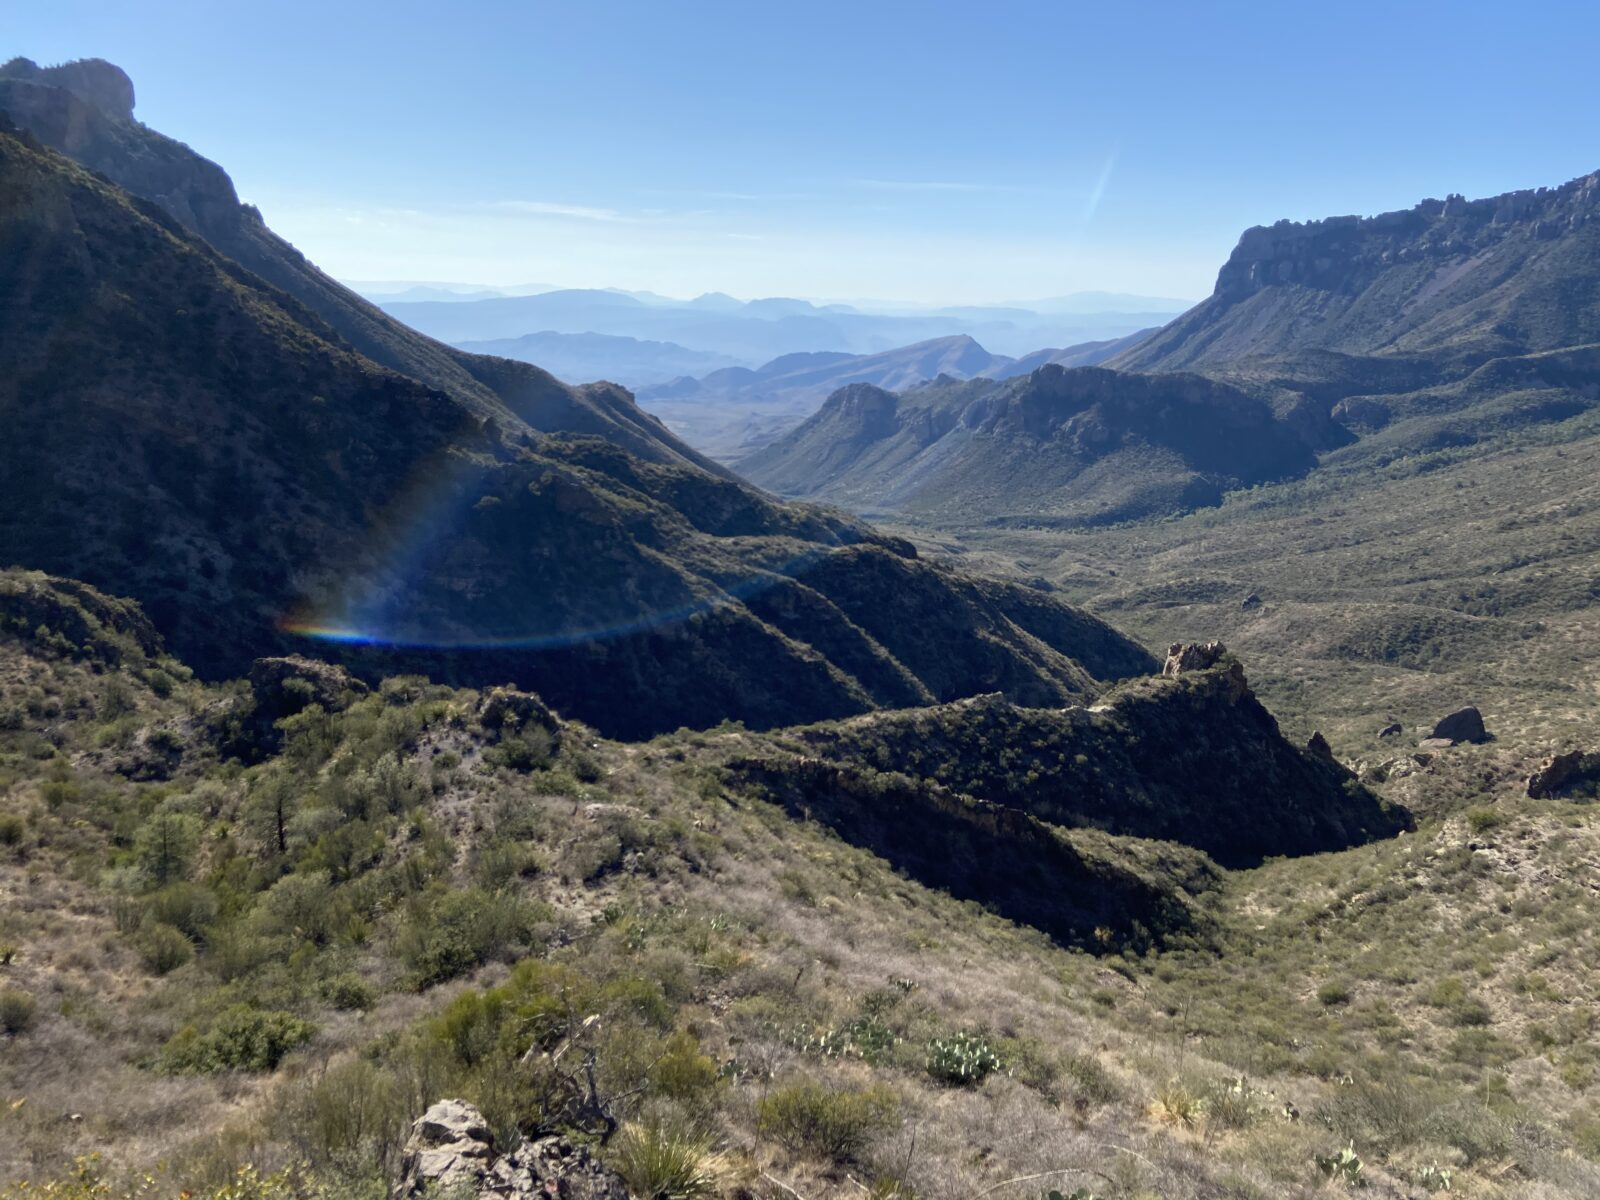 The Chisos Mountains are a good place to find WiFi in Big Bend National Park.